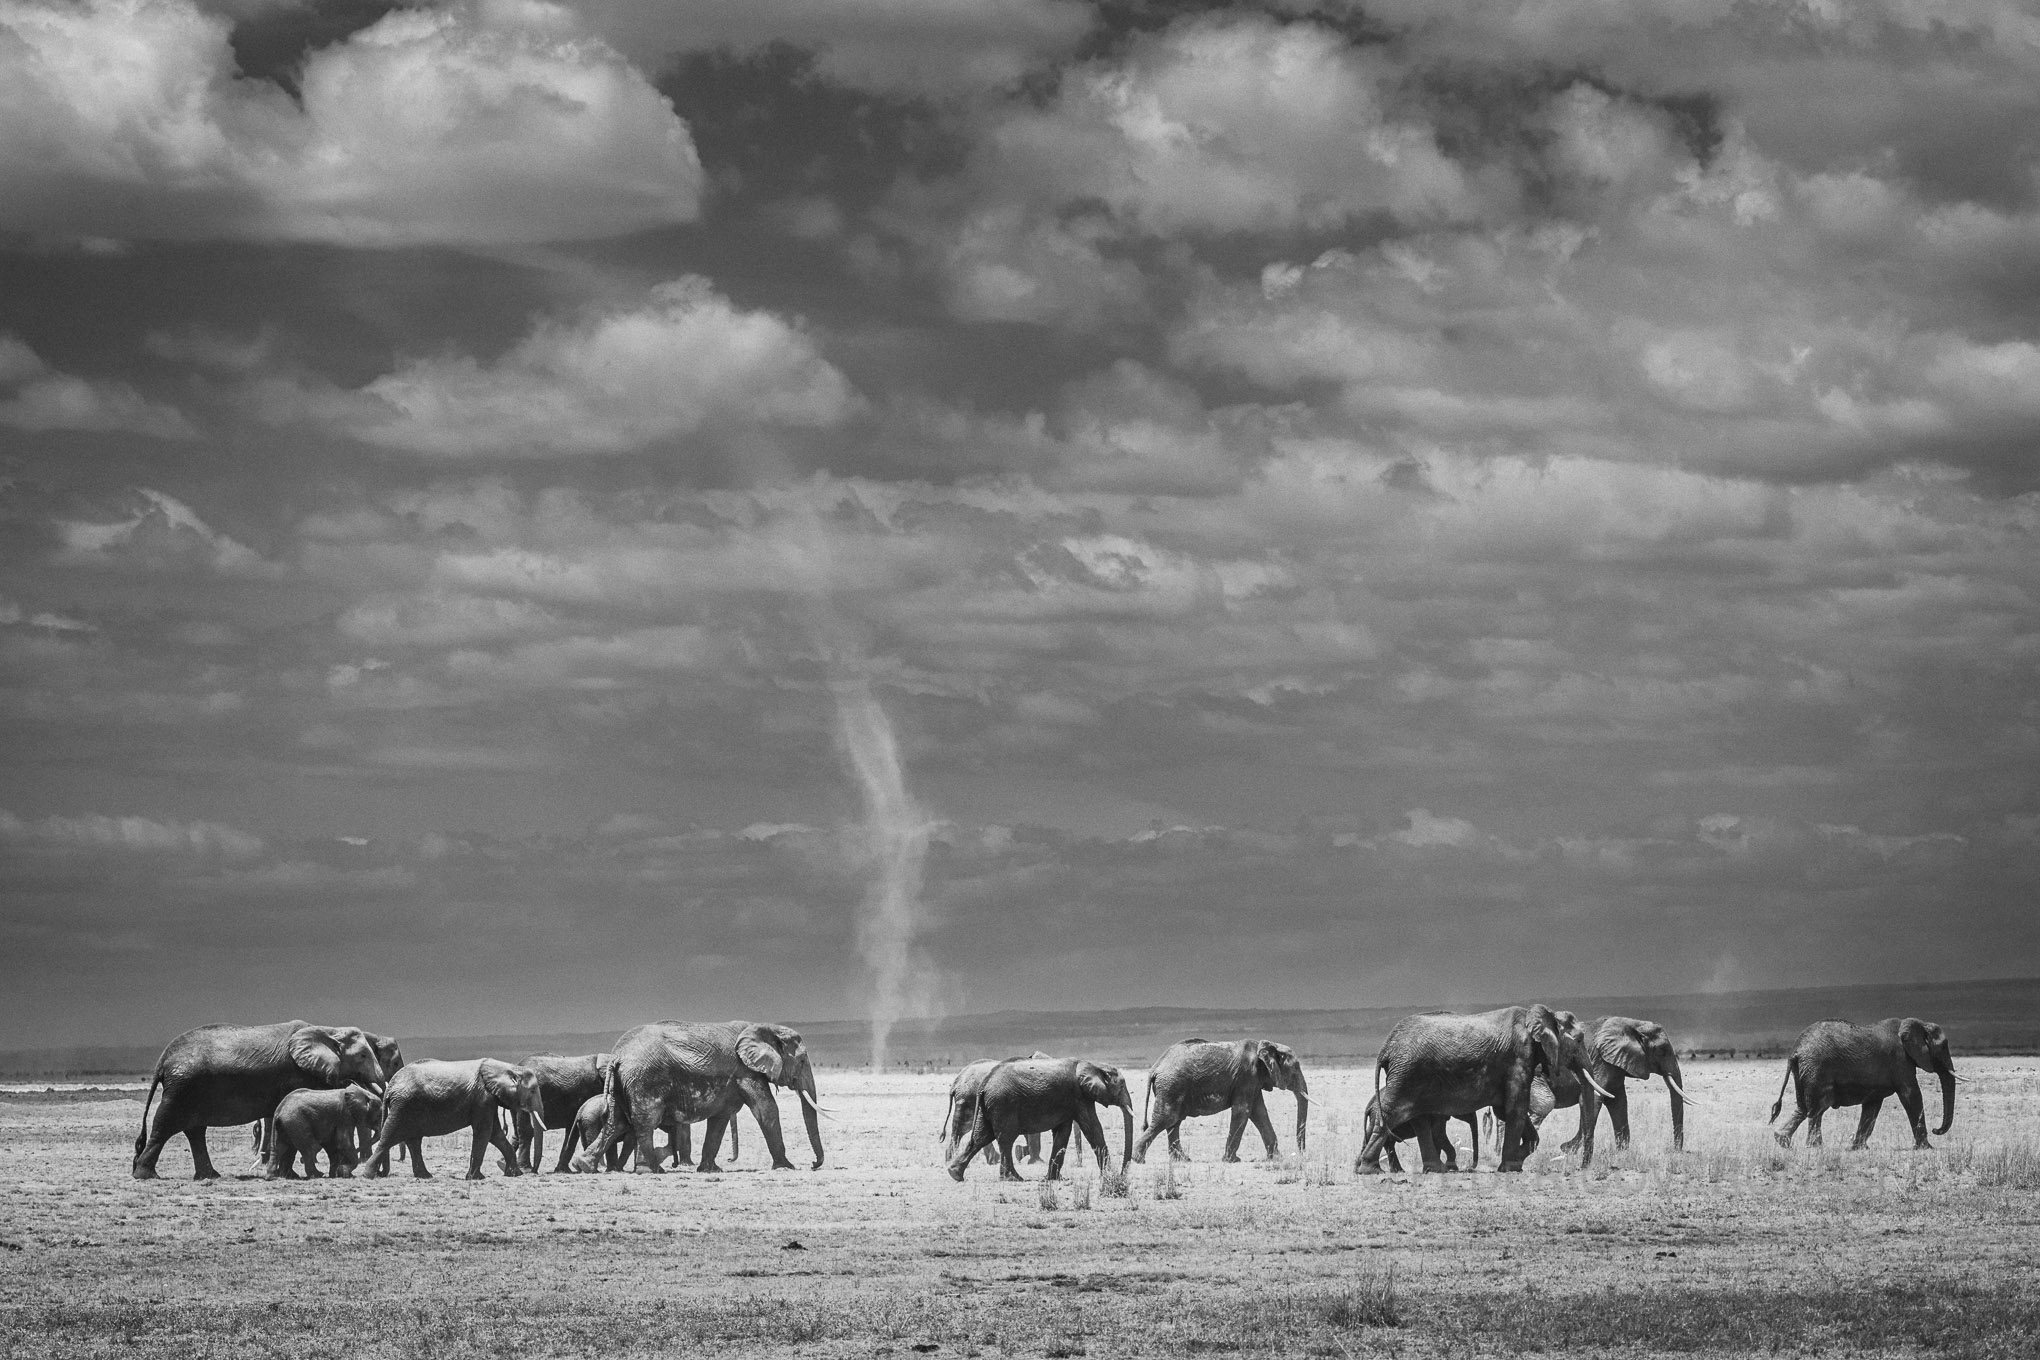 Kenya_Amboseli_Elephants_Photo_Safari